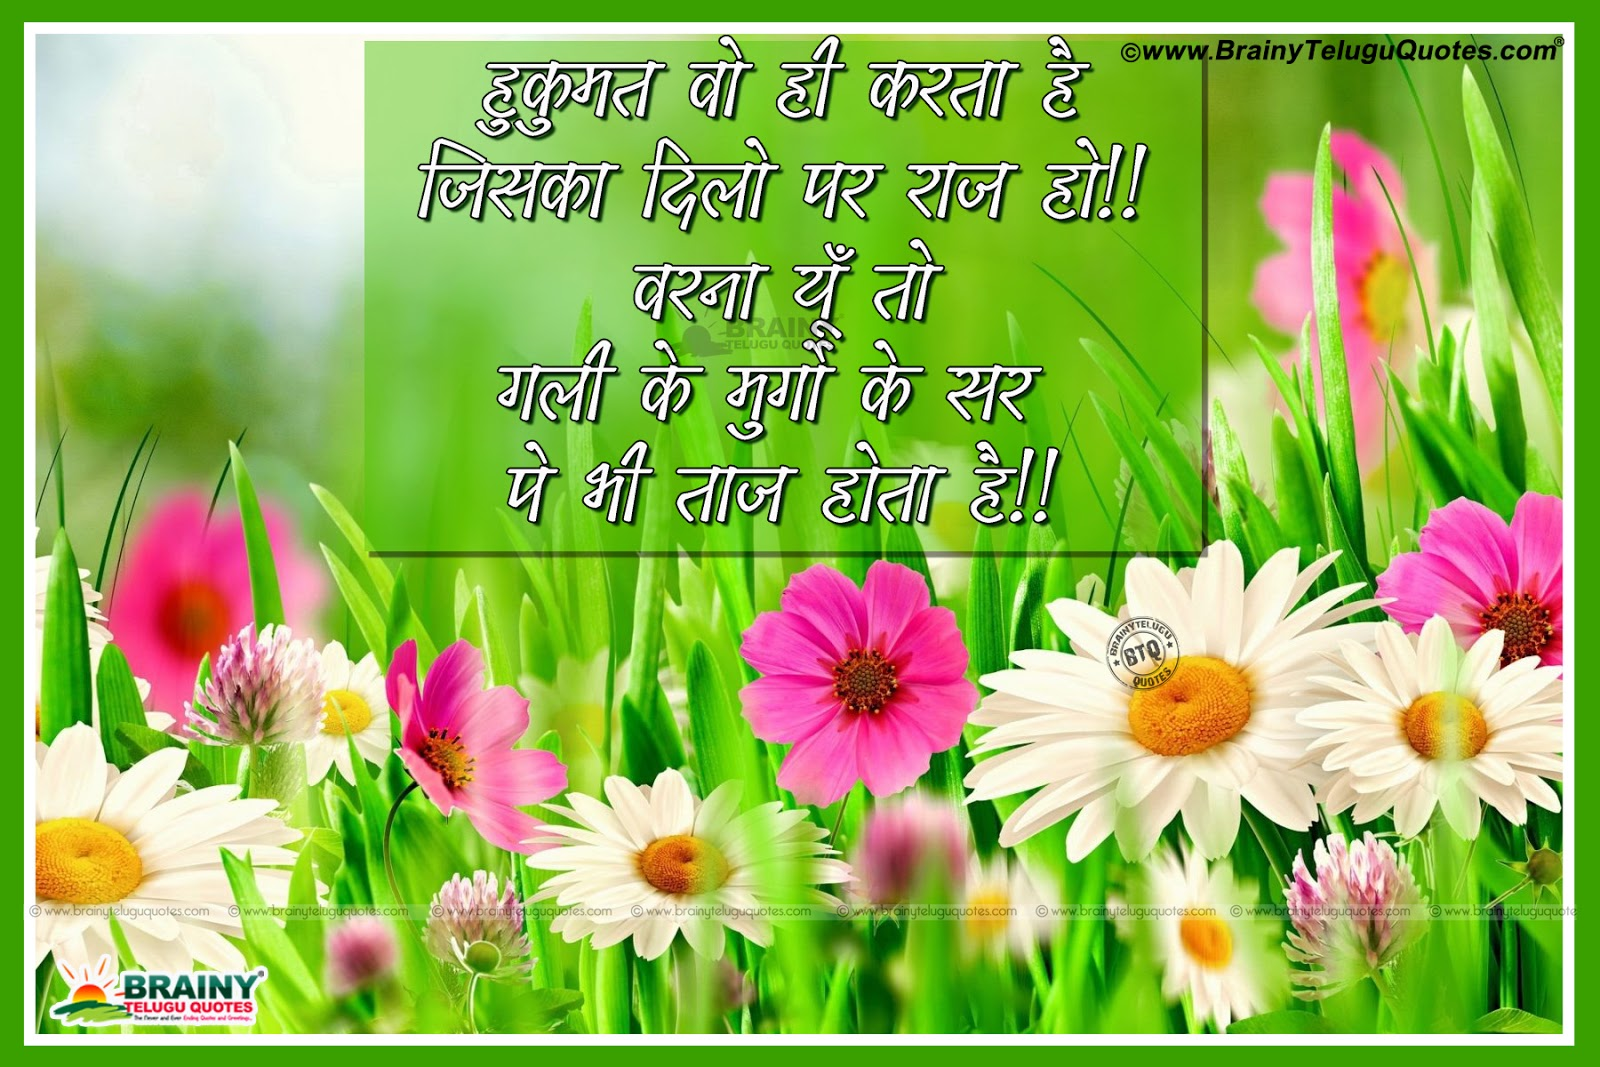 famous best attitude inspirational quotes in hindi